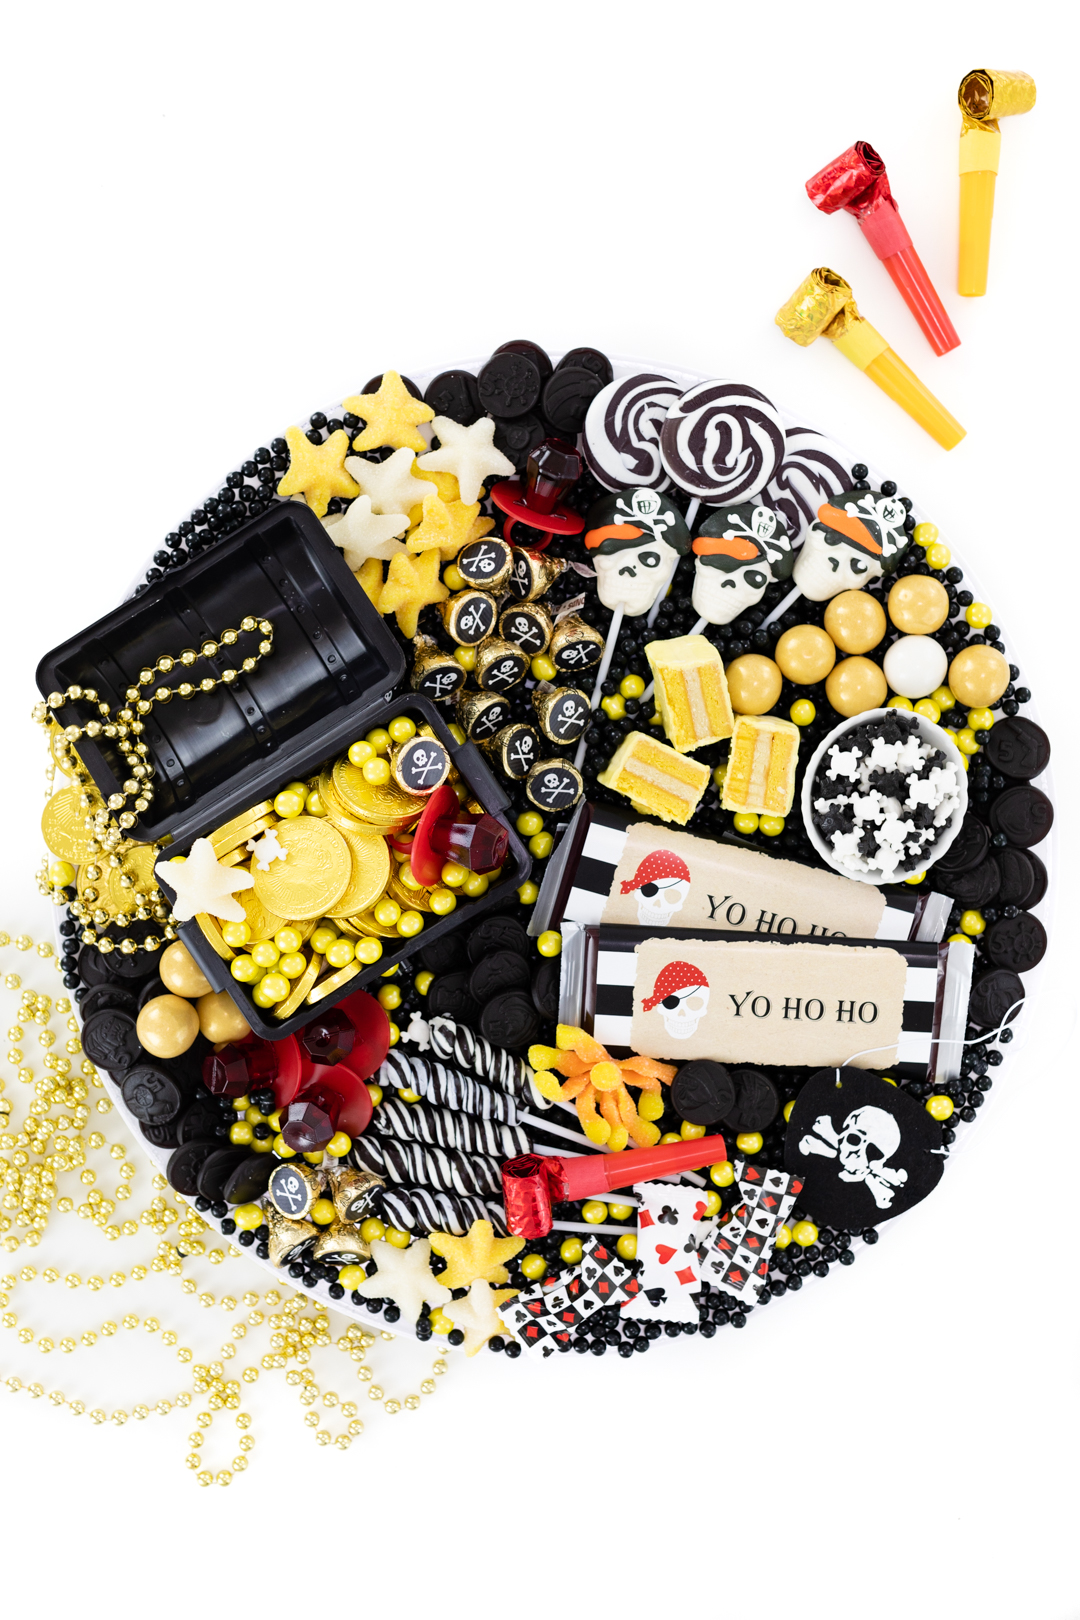 pirate charcuterie candy board with treasure chest, gold coin chocolates, black and white lollipops.